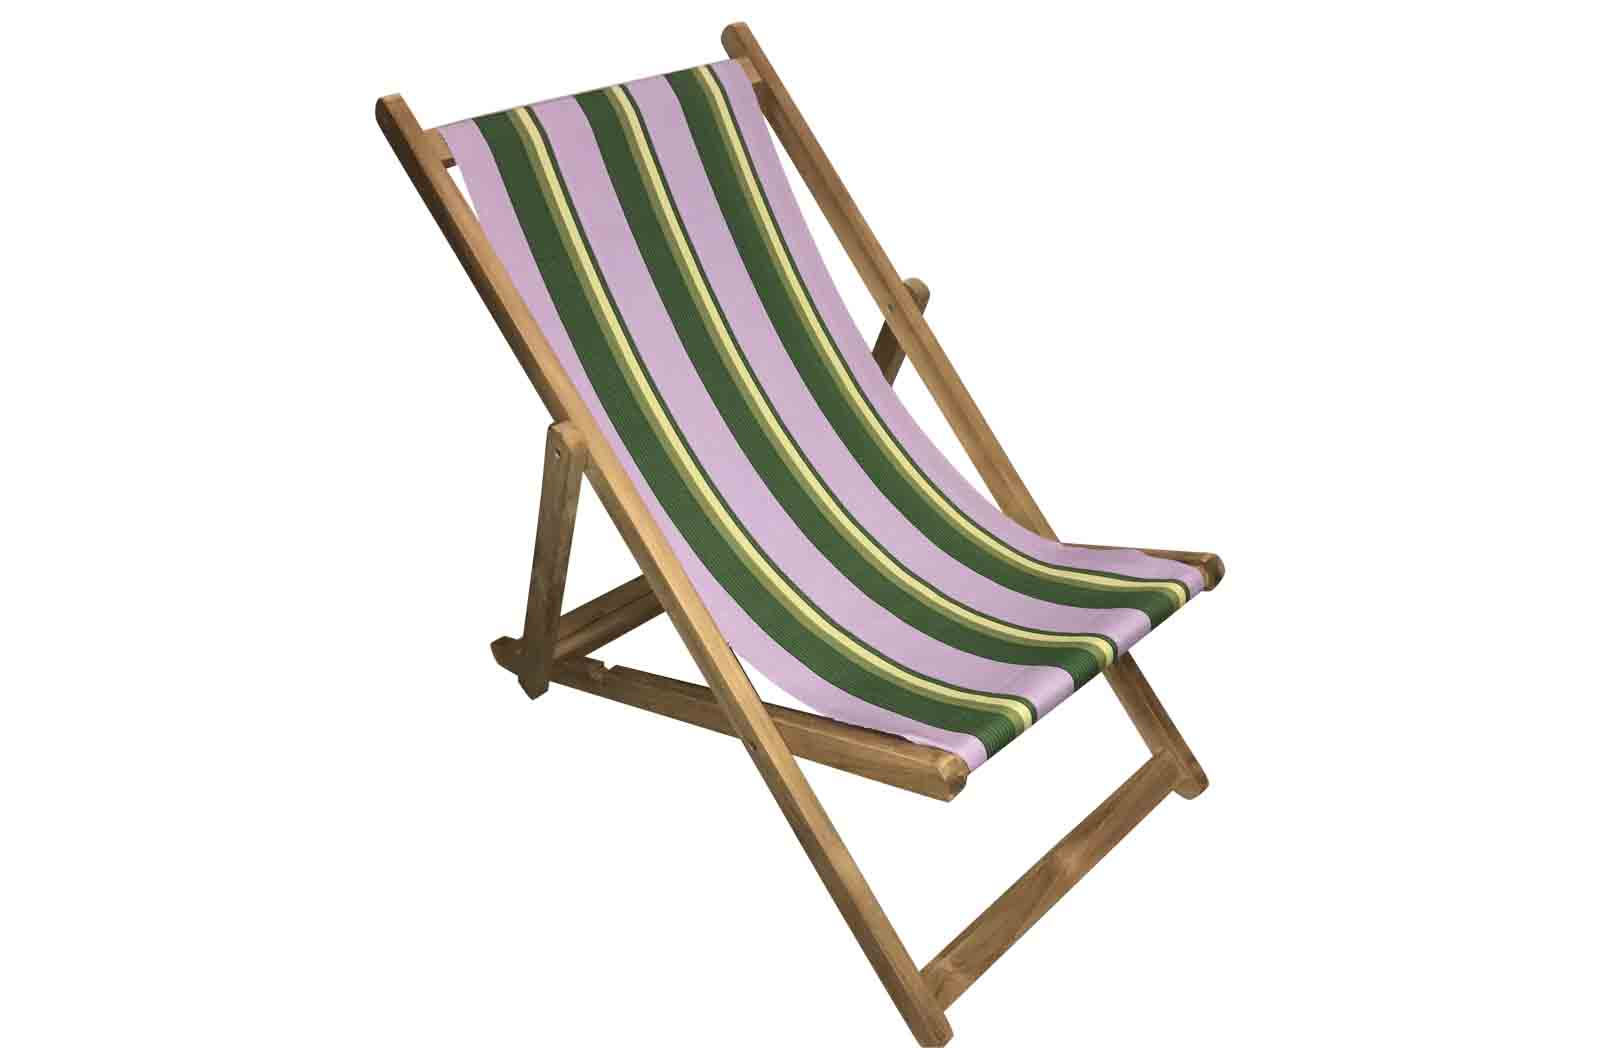 lilac, lime, dark green - Deckchair Canvas | Deckchair Fabrics | Striped Deck Chair Fabrics